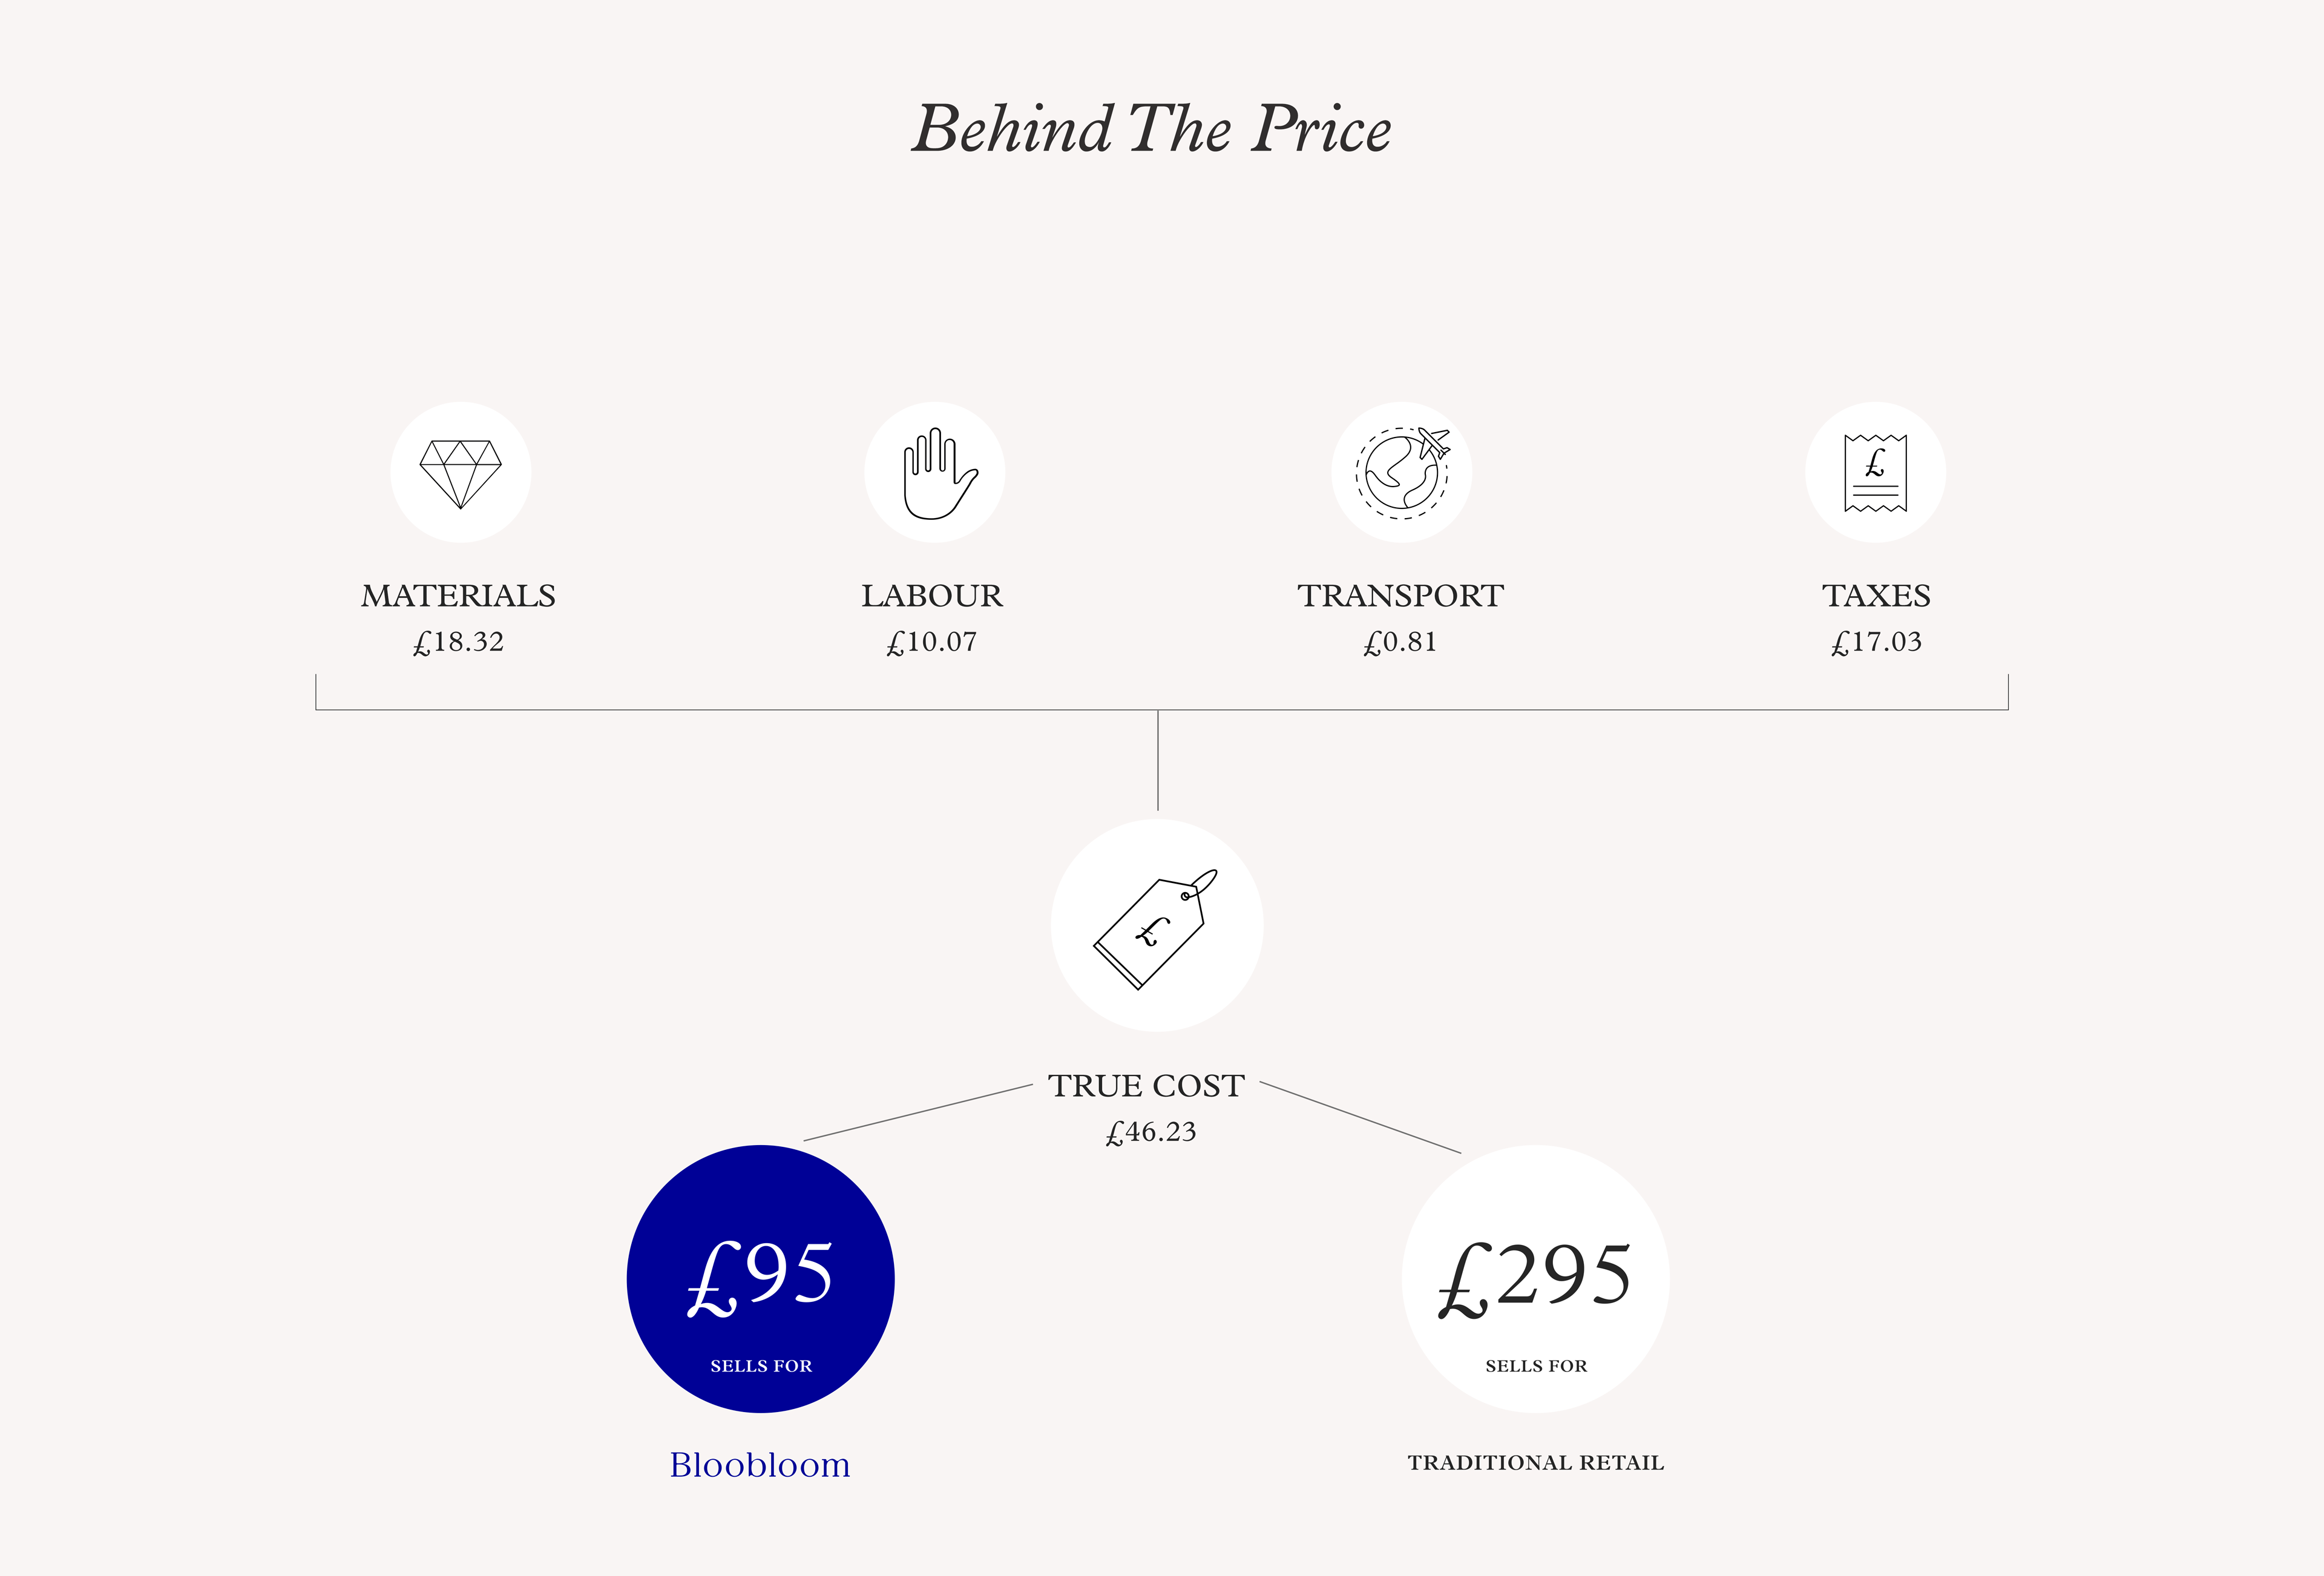 Behind The Price